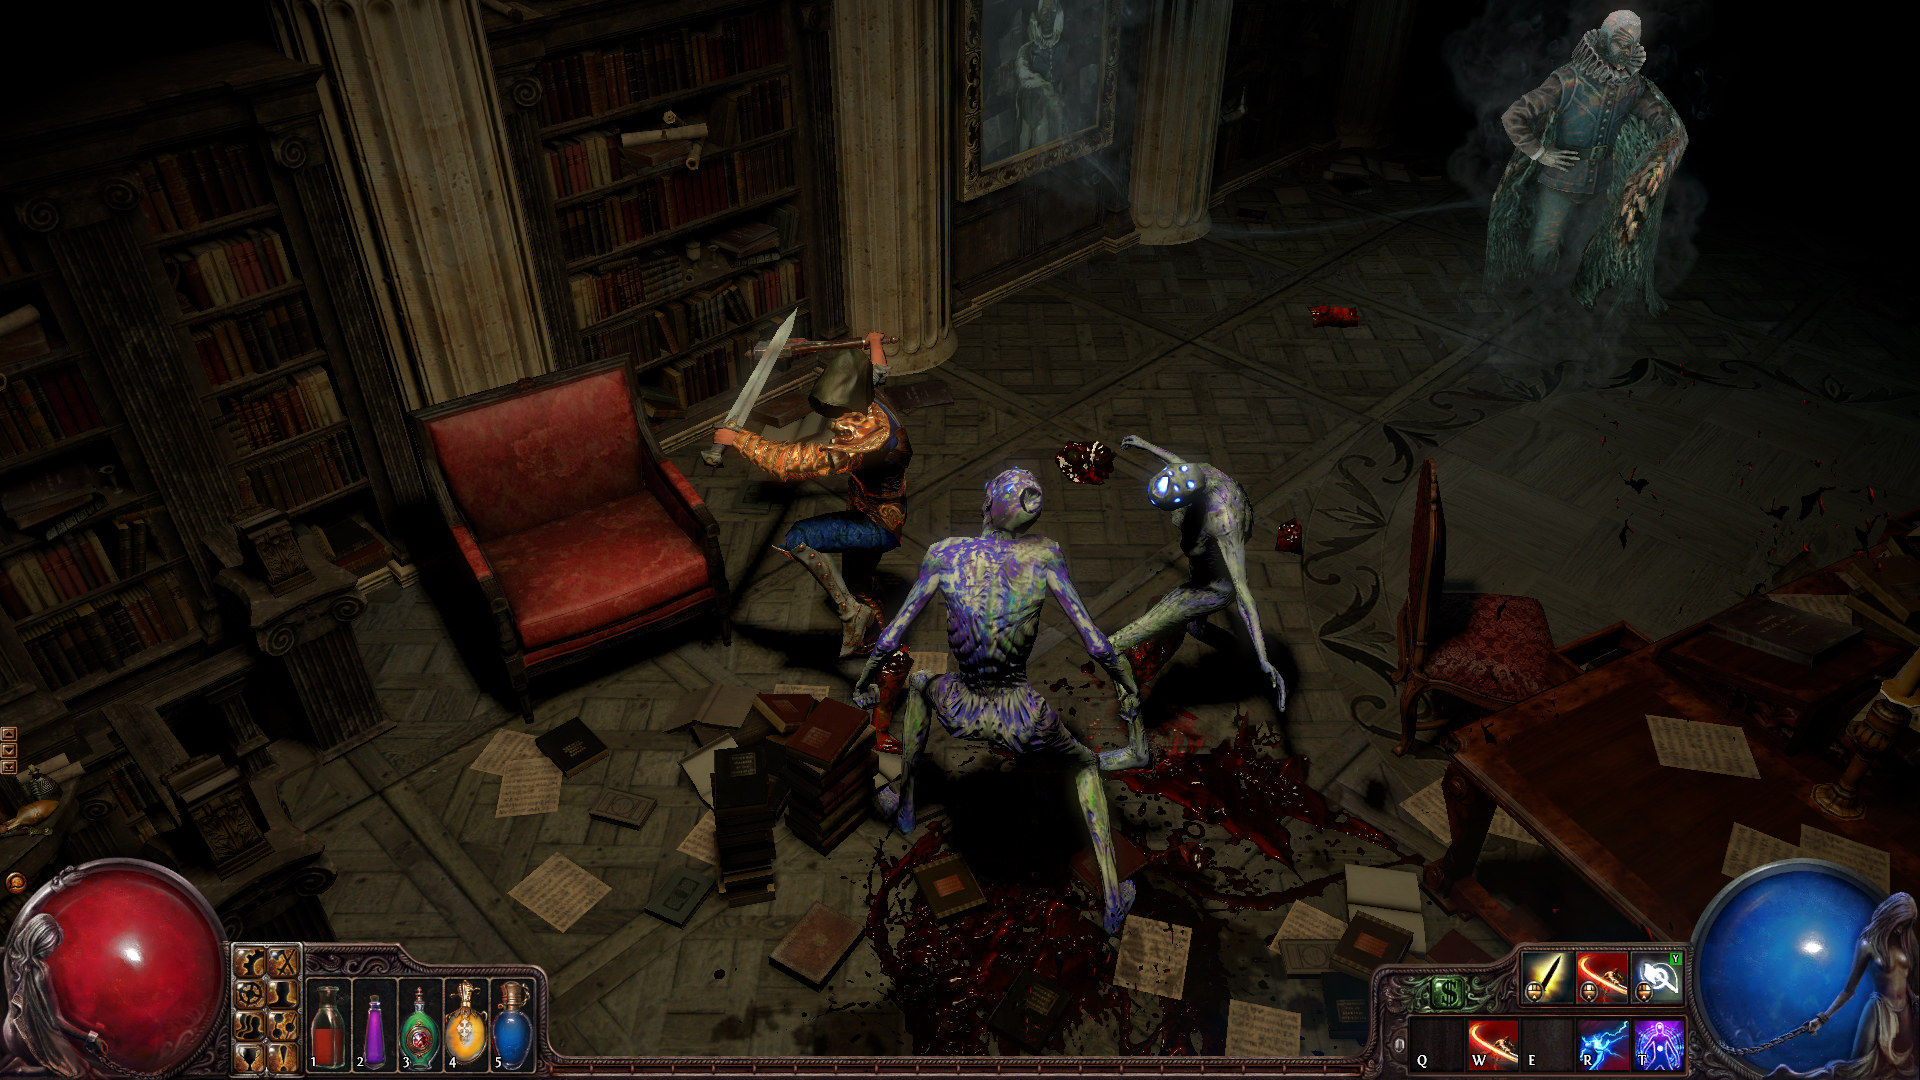 news.6dcbe0cab9df6c6a.jpg - Path of Exile